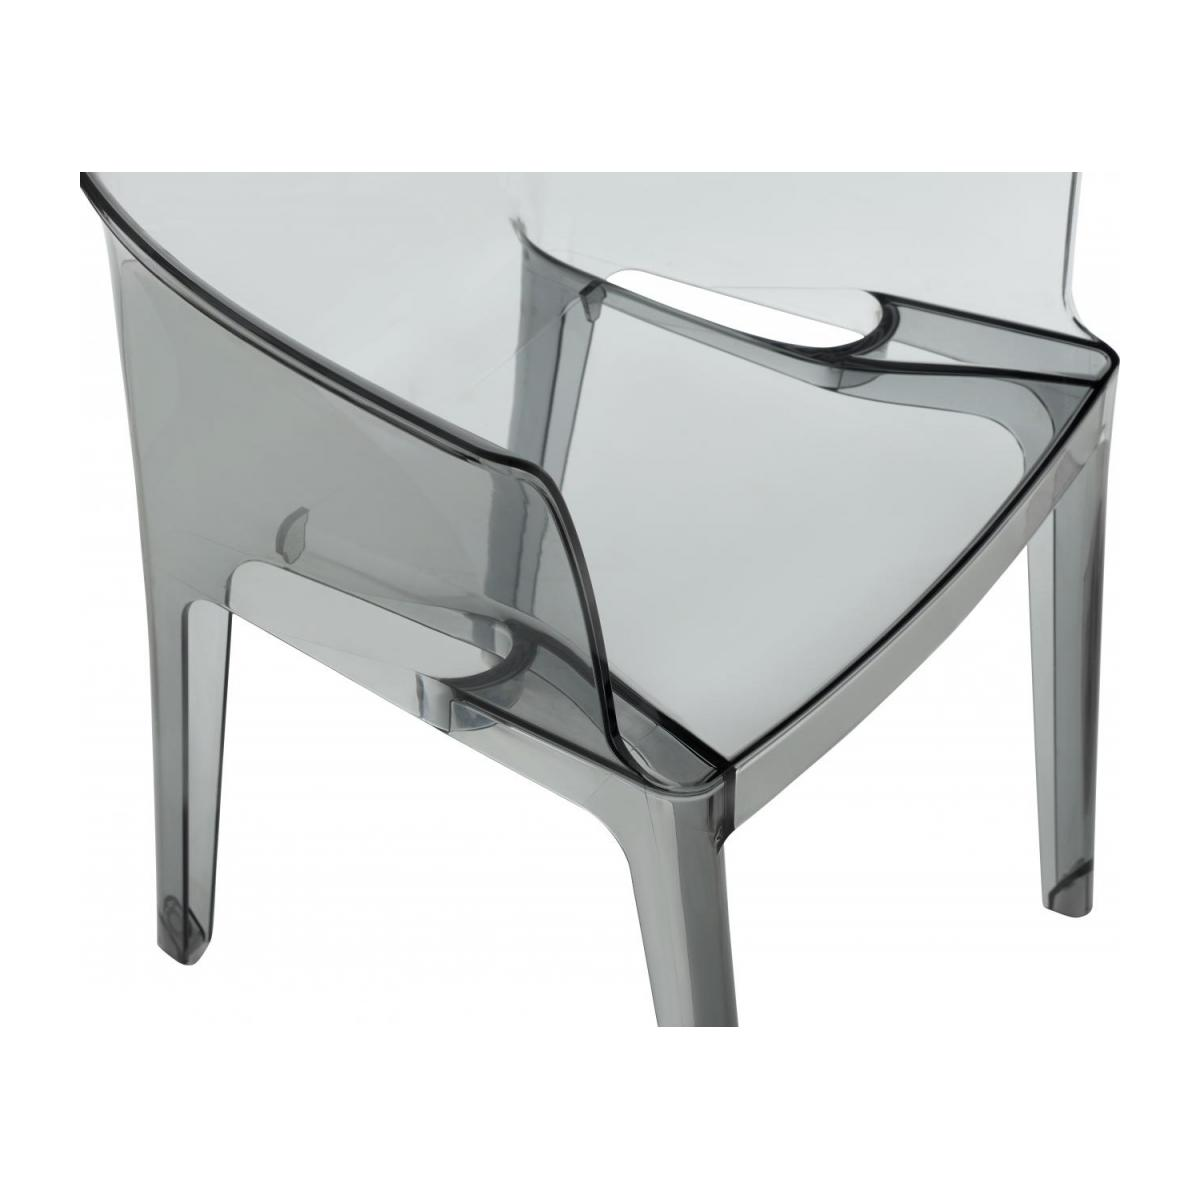 Smokey grey armchair in polycarbonate n°6